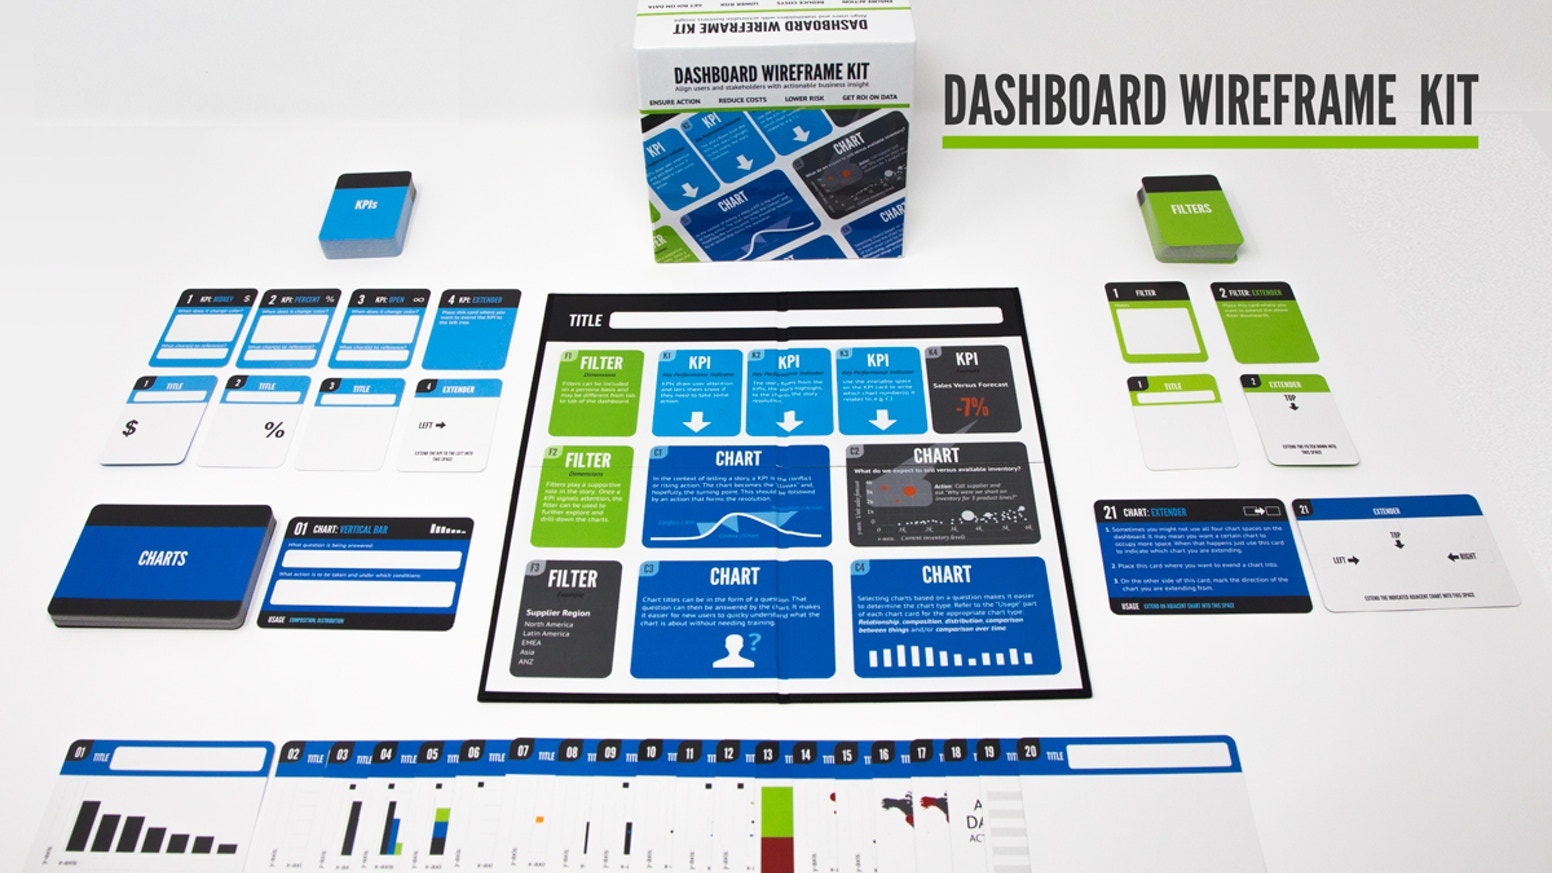 A wireframing kit for designing business dashboards.